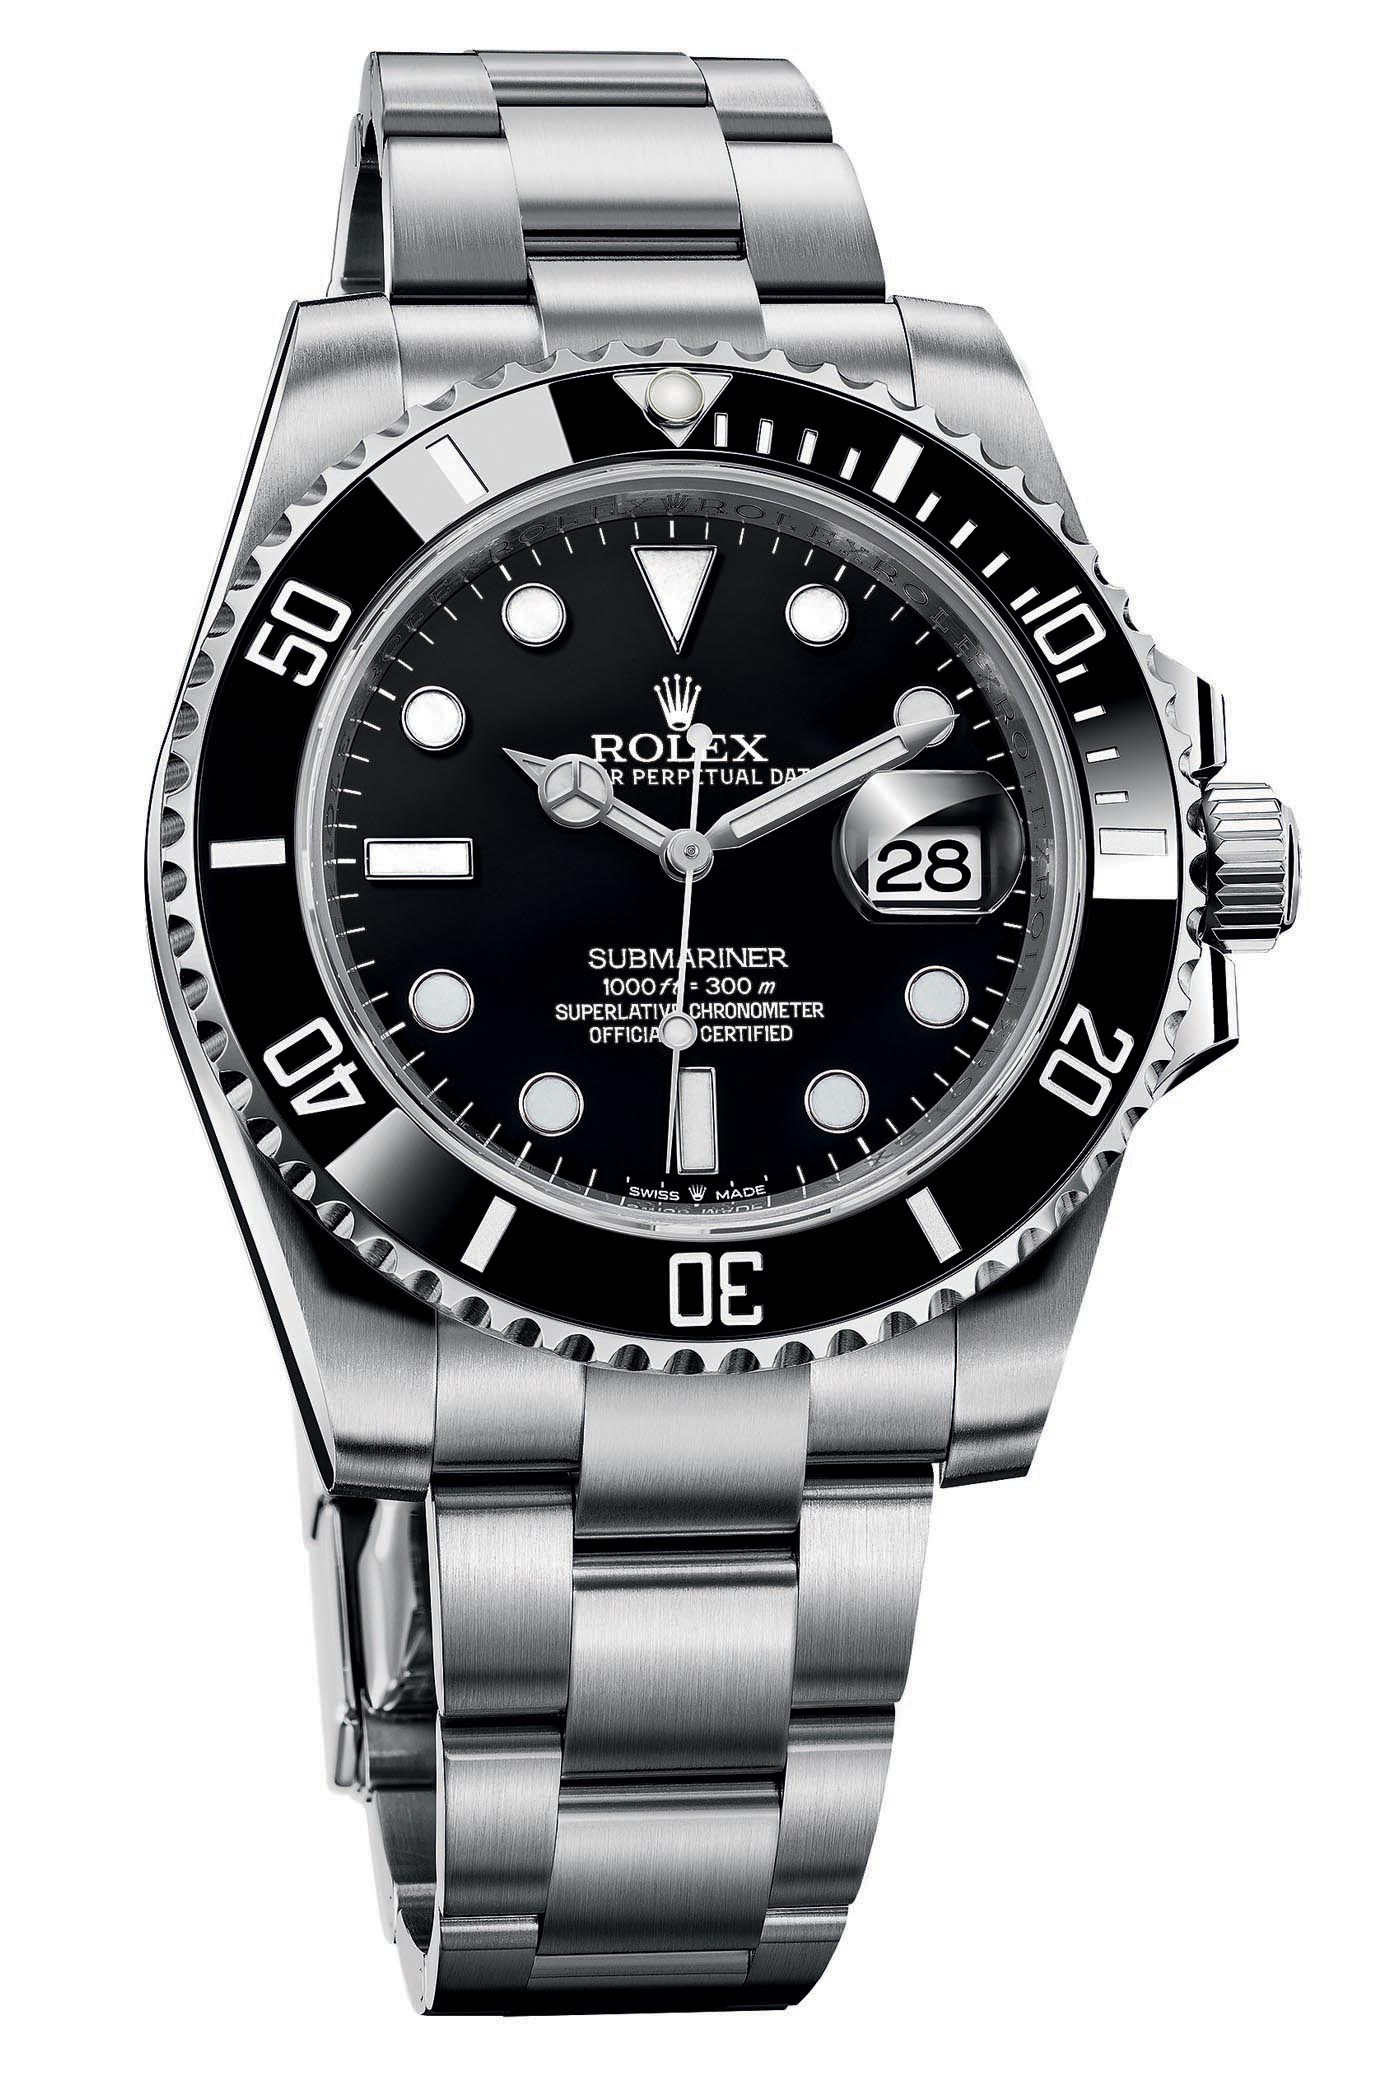 Rolex Submariner 2019 Calibre 3235 ref 126610LN - Rolex Baselworld 2019 - Rolex 2019 Predictions